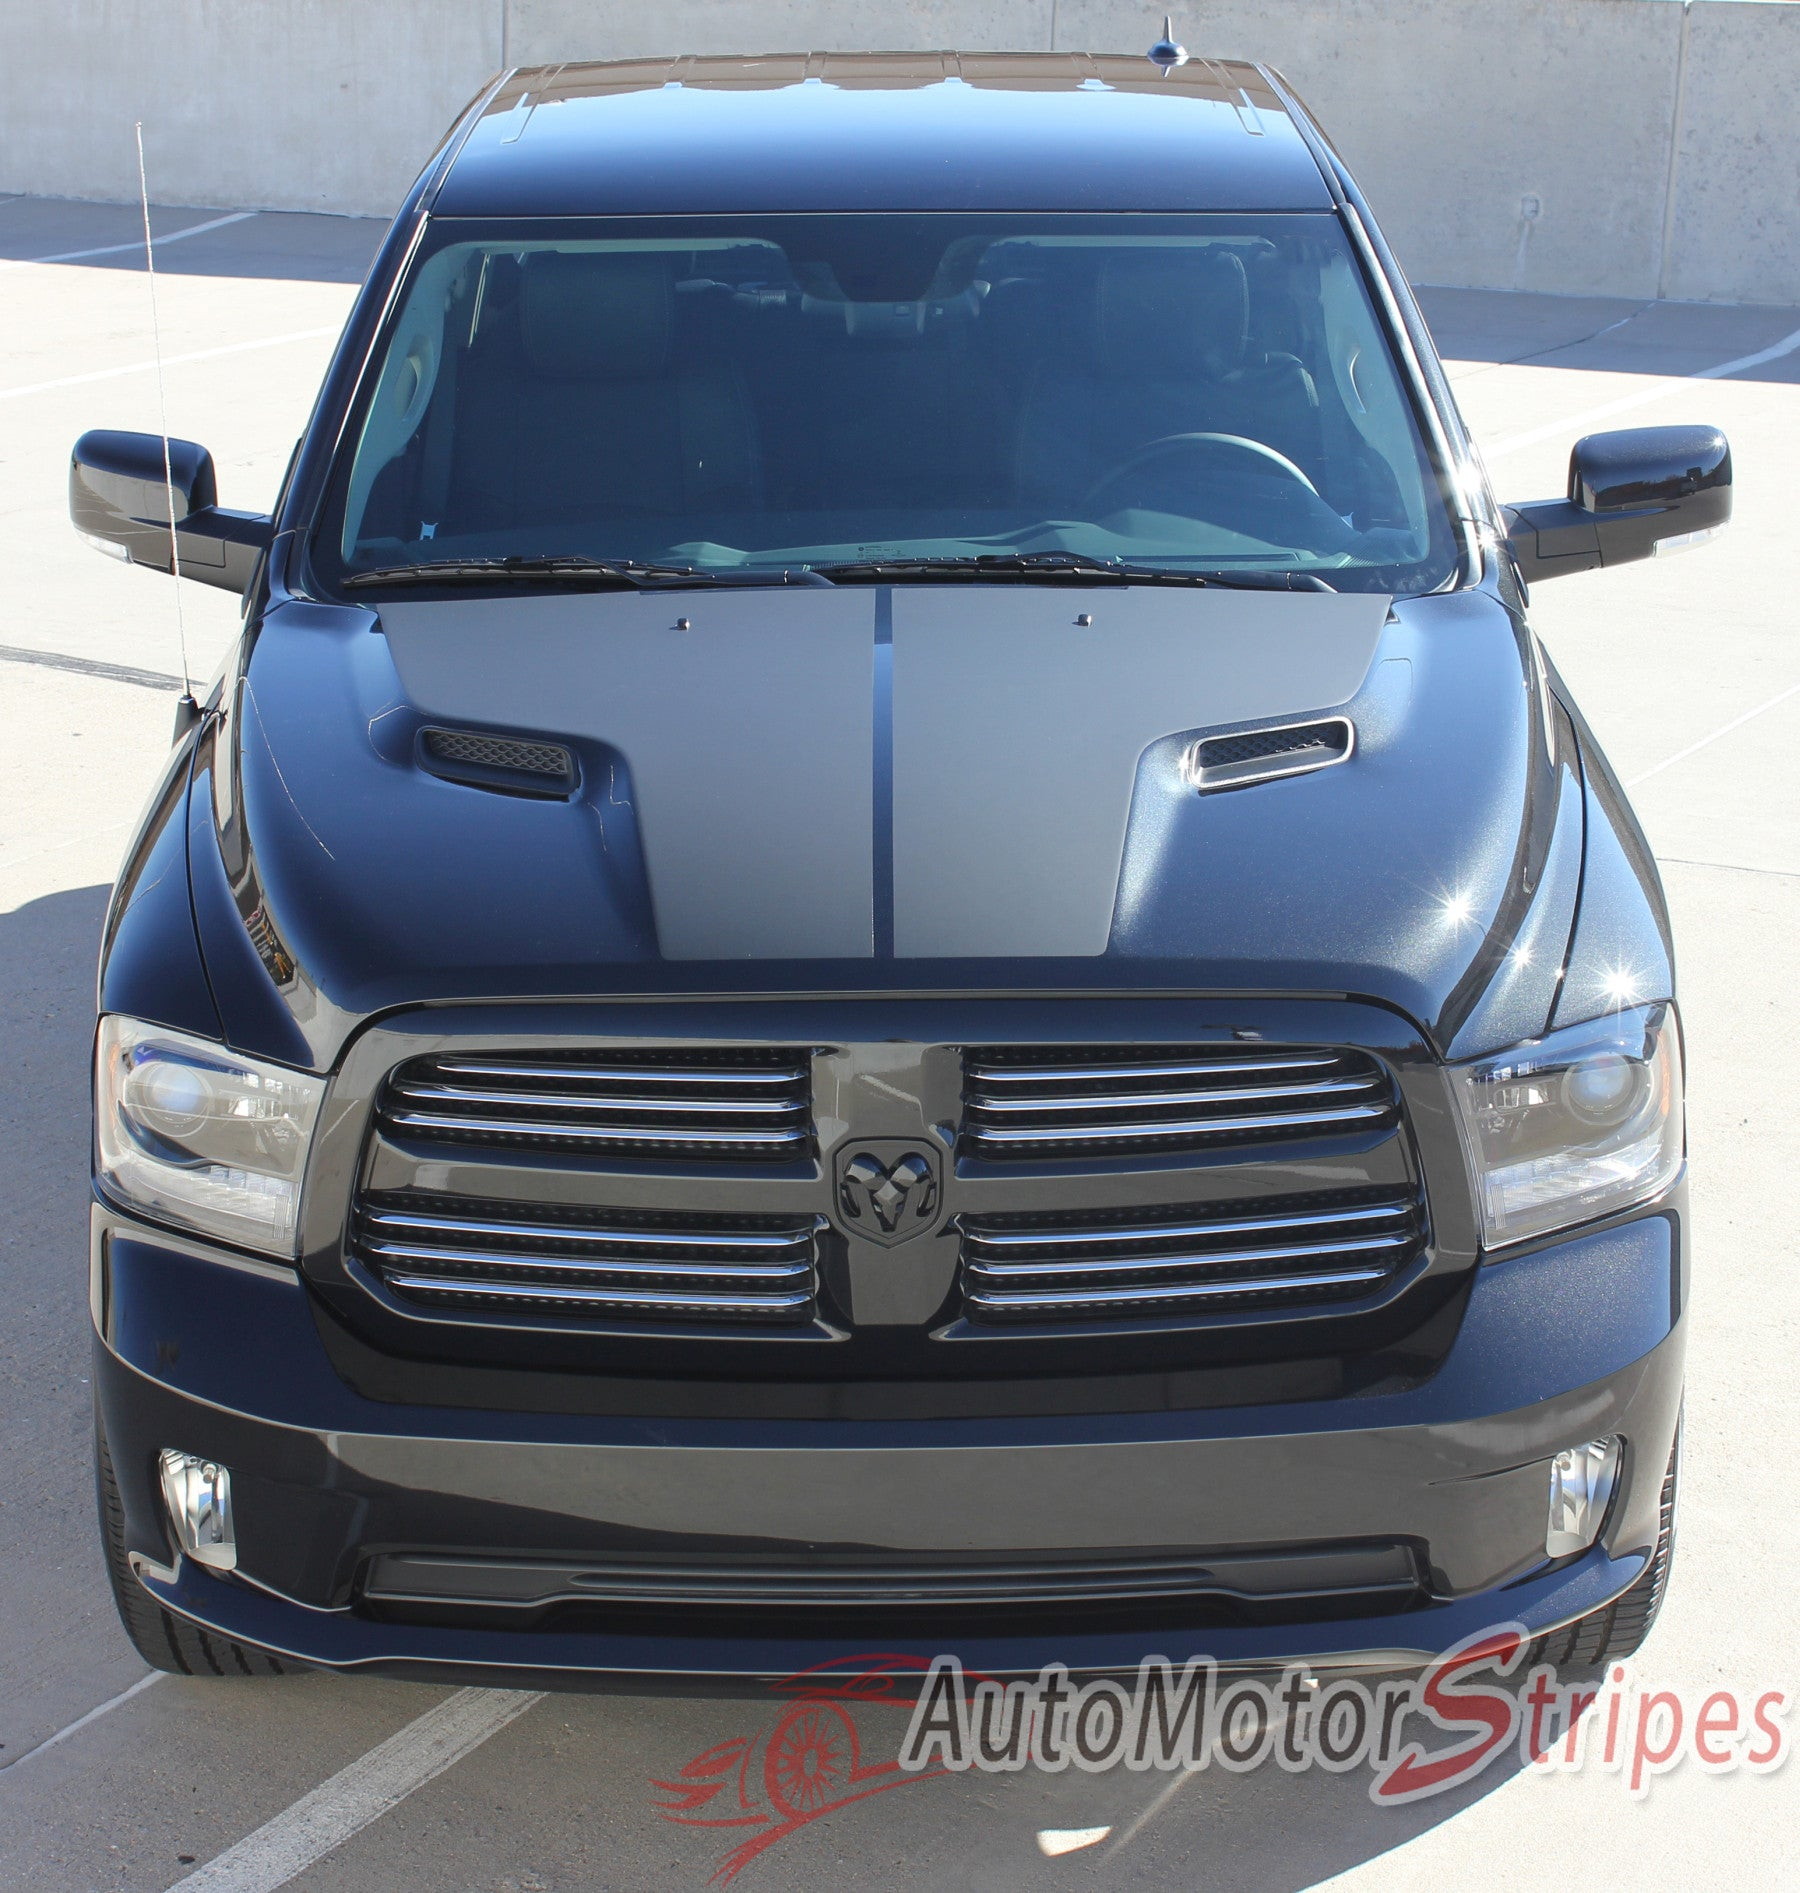 2009 2017 dodge ram hemi hood blackout accent solid center winged viny auto motor stripes. Black Bedroom Furniture Sets. Home Design Ideas